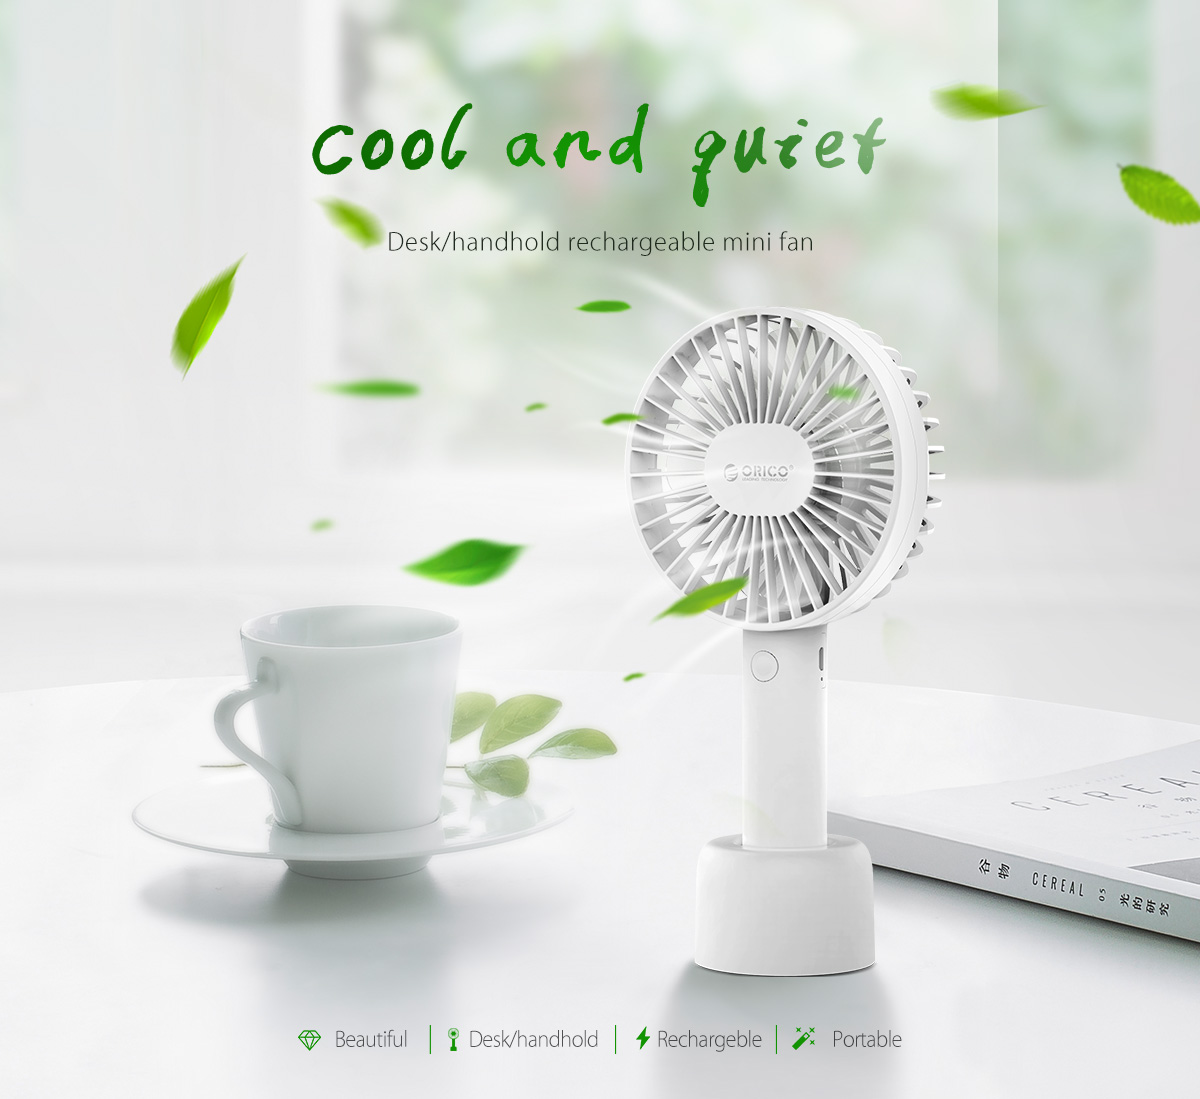 desk/handhold rechargeable mini usb fan